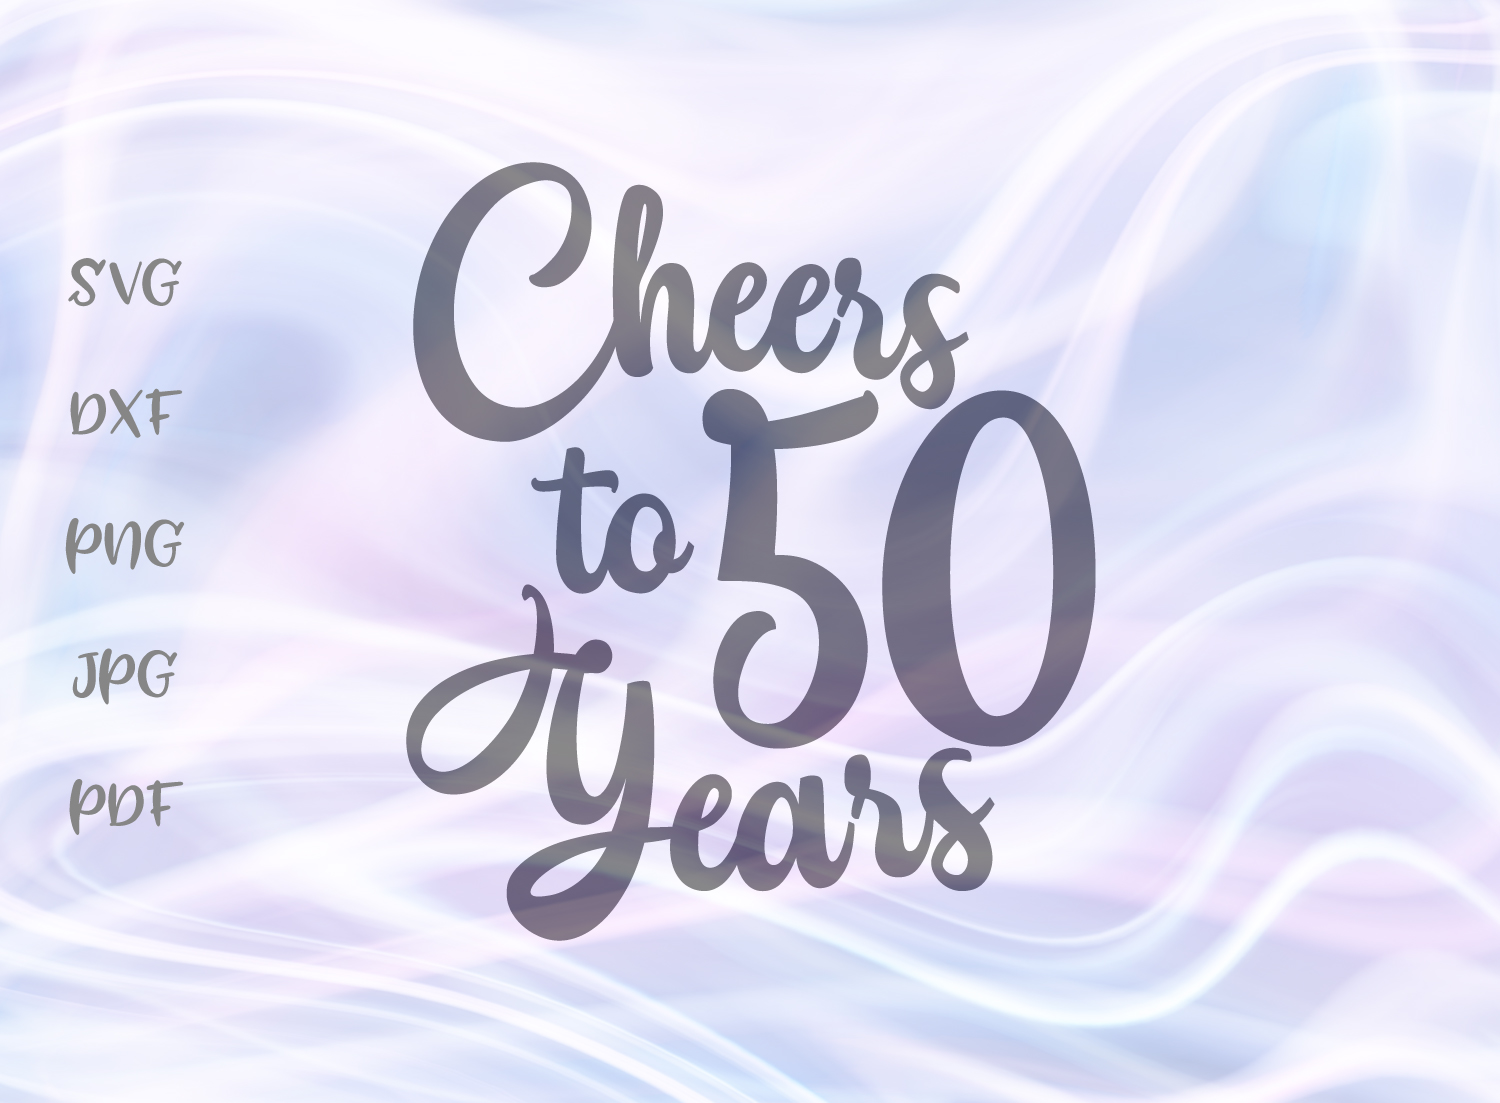 Cheers to 50 years SVG.